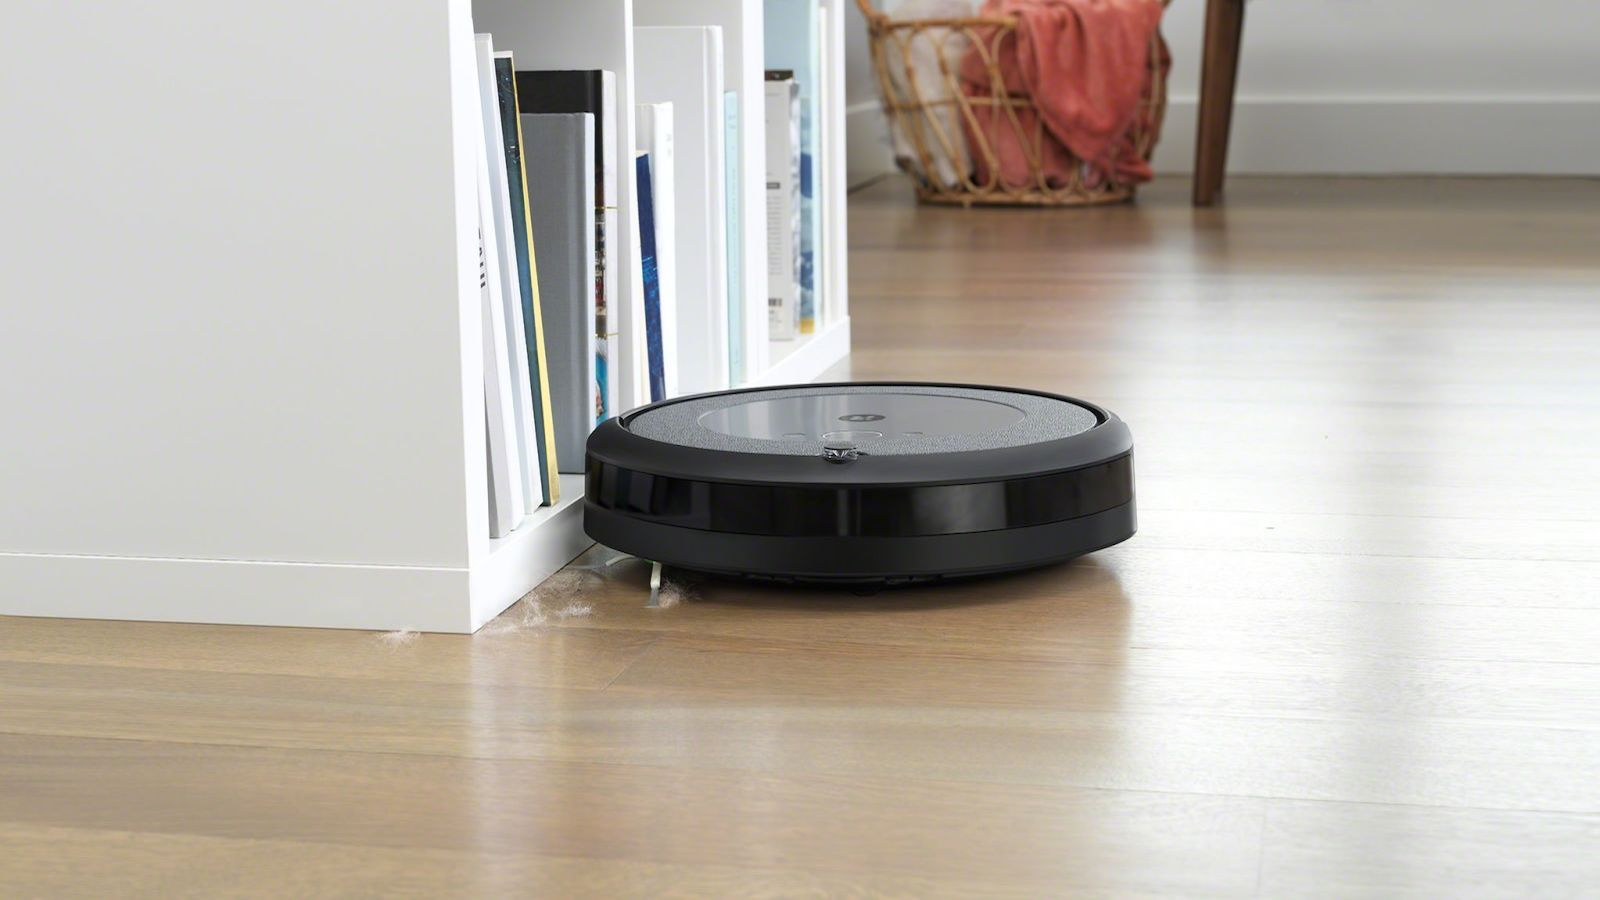 iRobot Roomba i3+ robot vacuum empties debris on its own